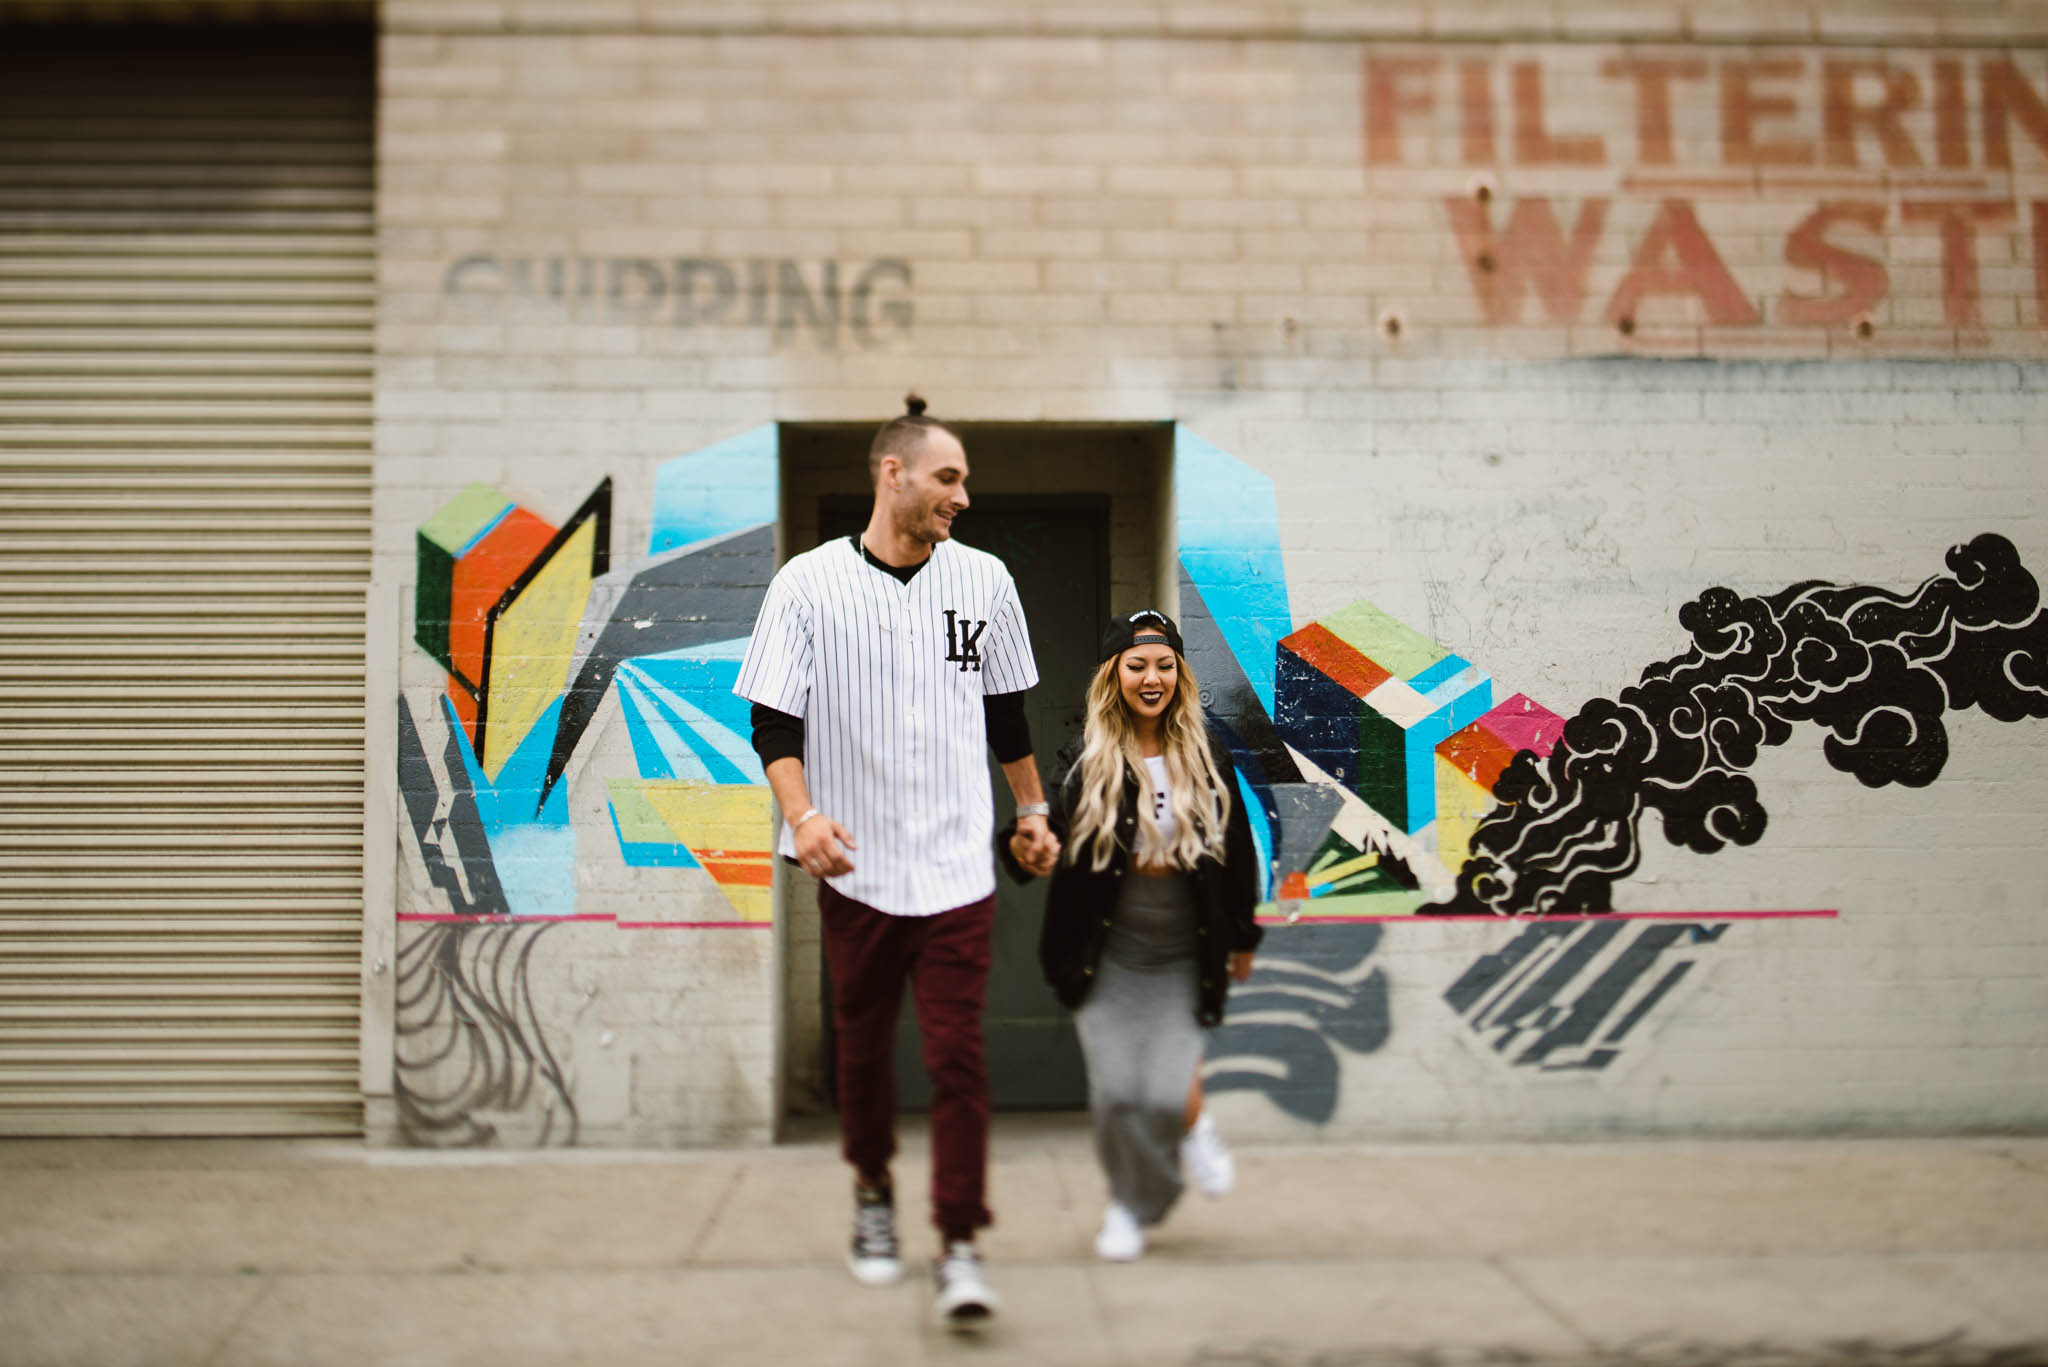 ©Isaiah-&-Taylor-Photography---Downtown-Los-Angeles-Skyline-Engagement-001.jpg